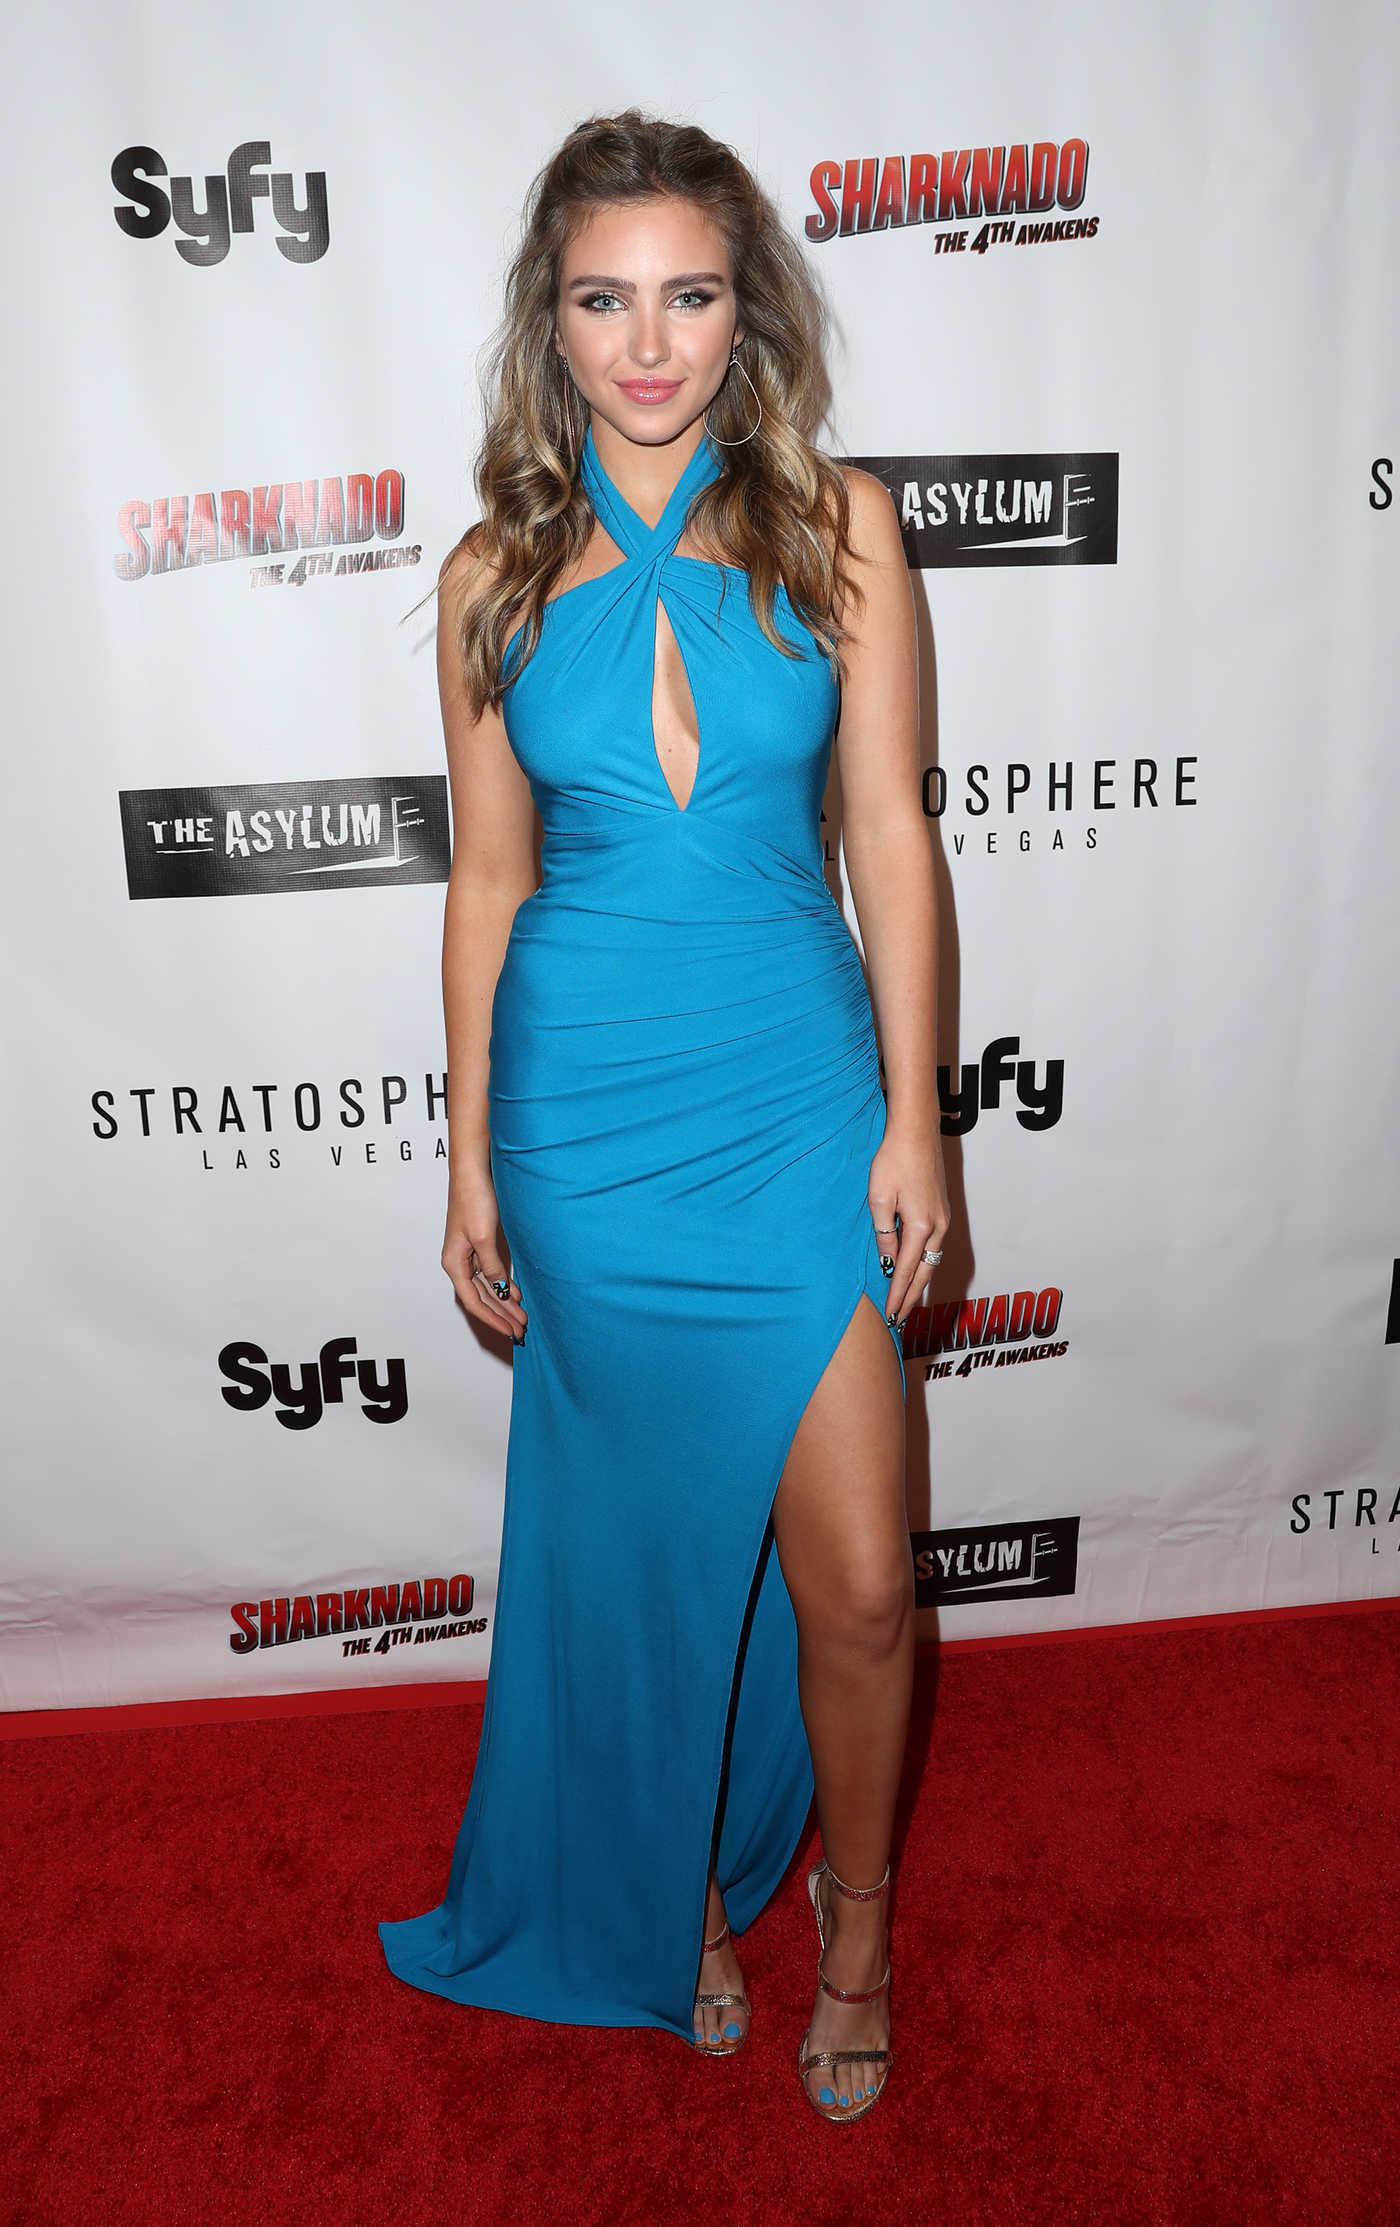 Ryan Newman at the Sharknado: The 4th Awakens Premiere in Las Vegas 07/31/2016